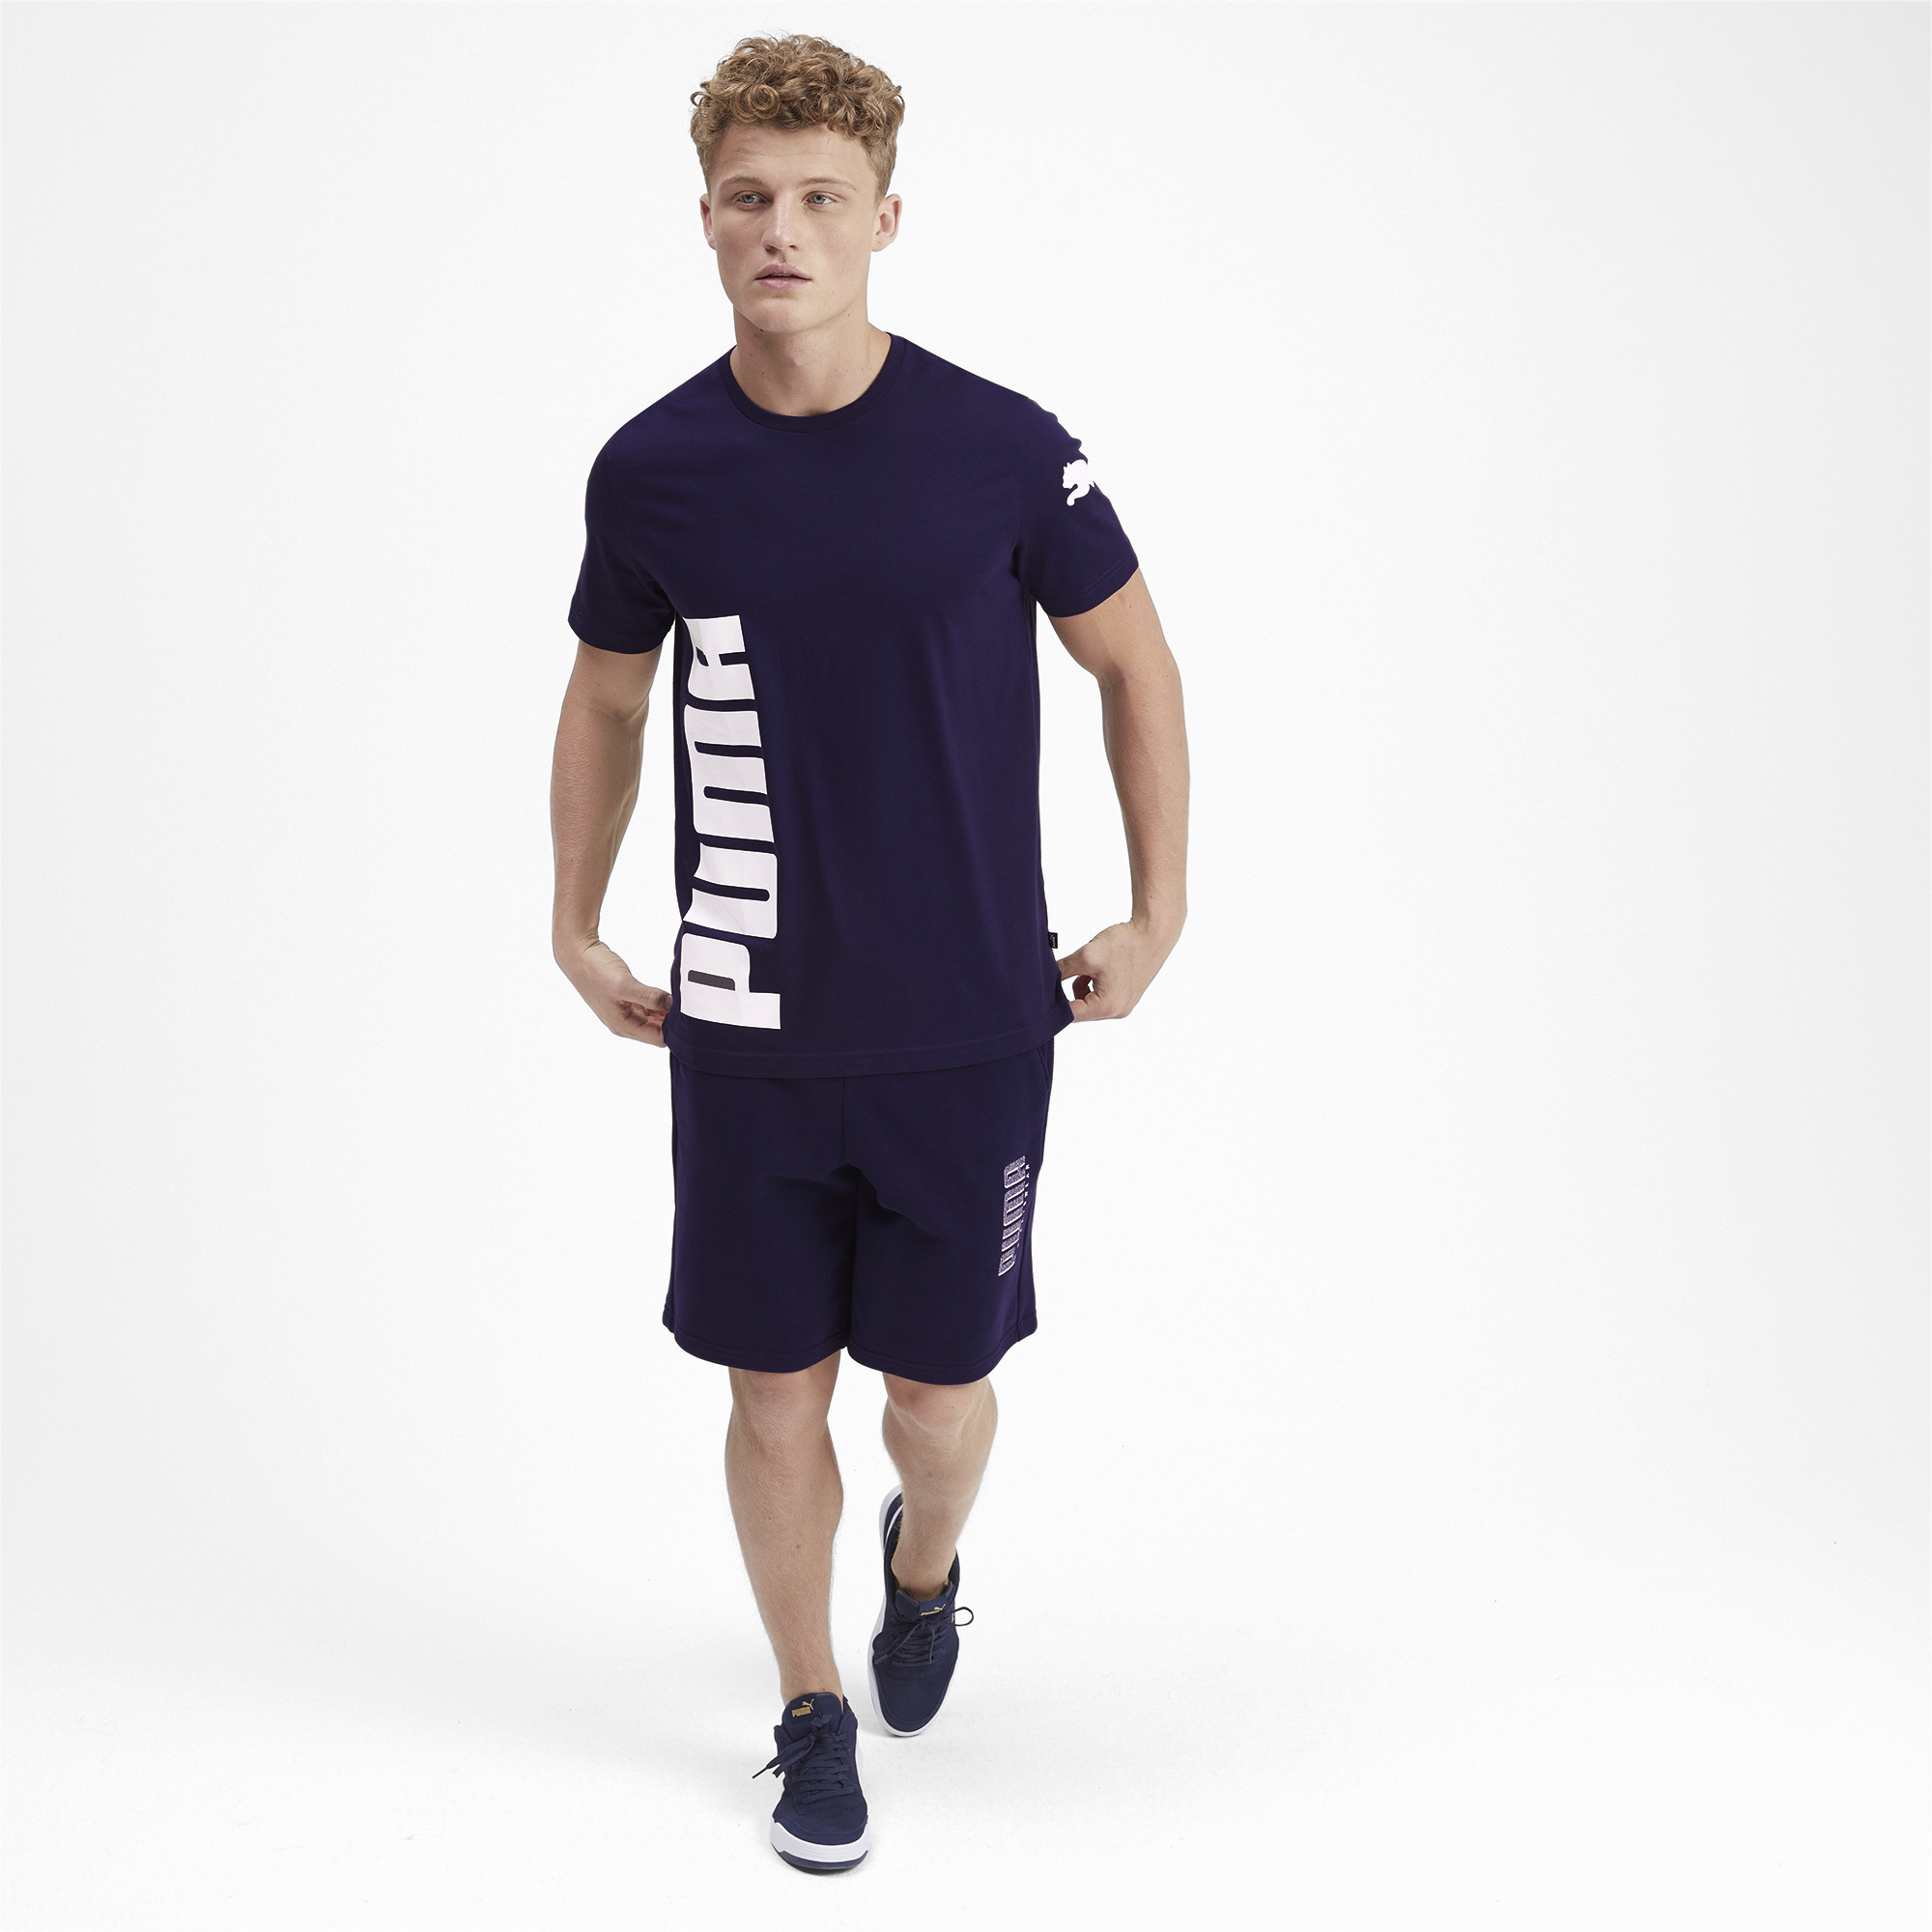 PUMA-Big-Logo-Men-039-s-Tee-Men-Tee-Basics thumbnail 40